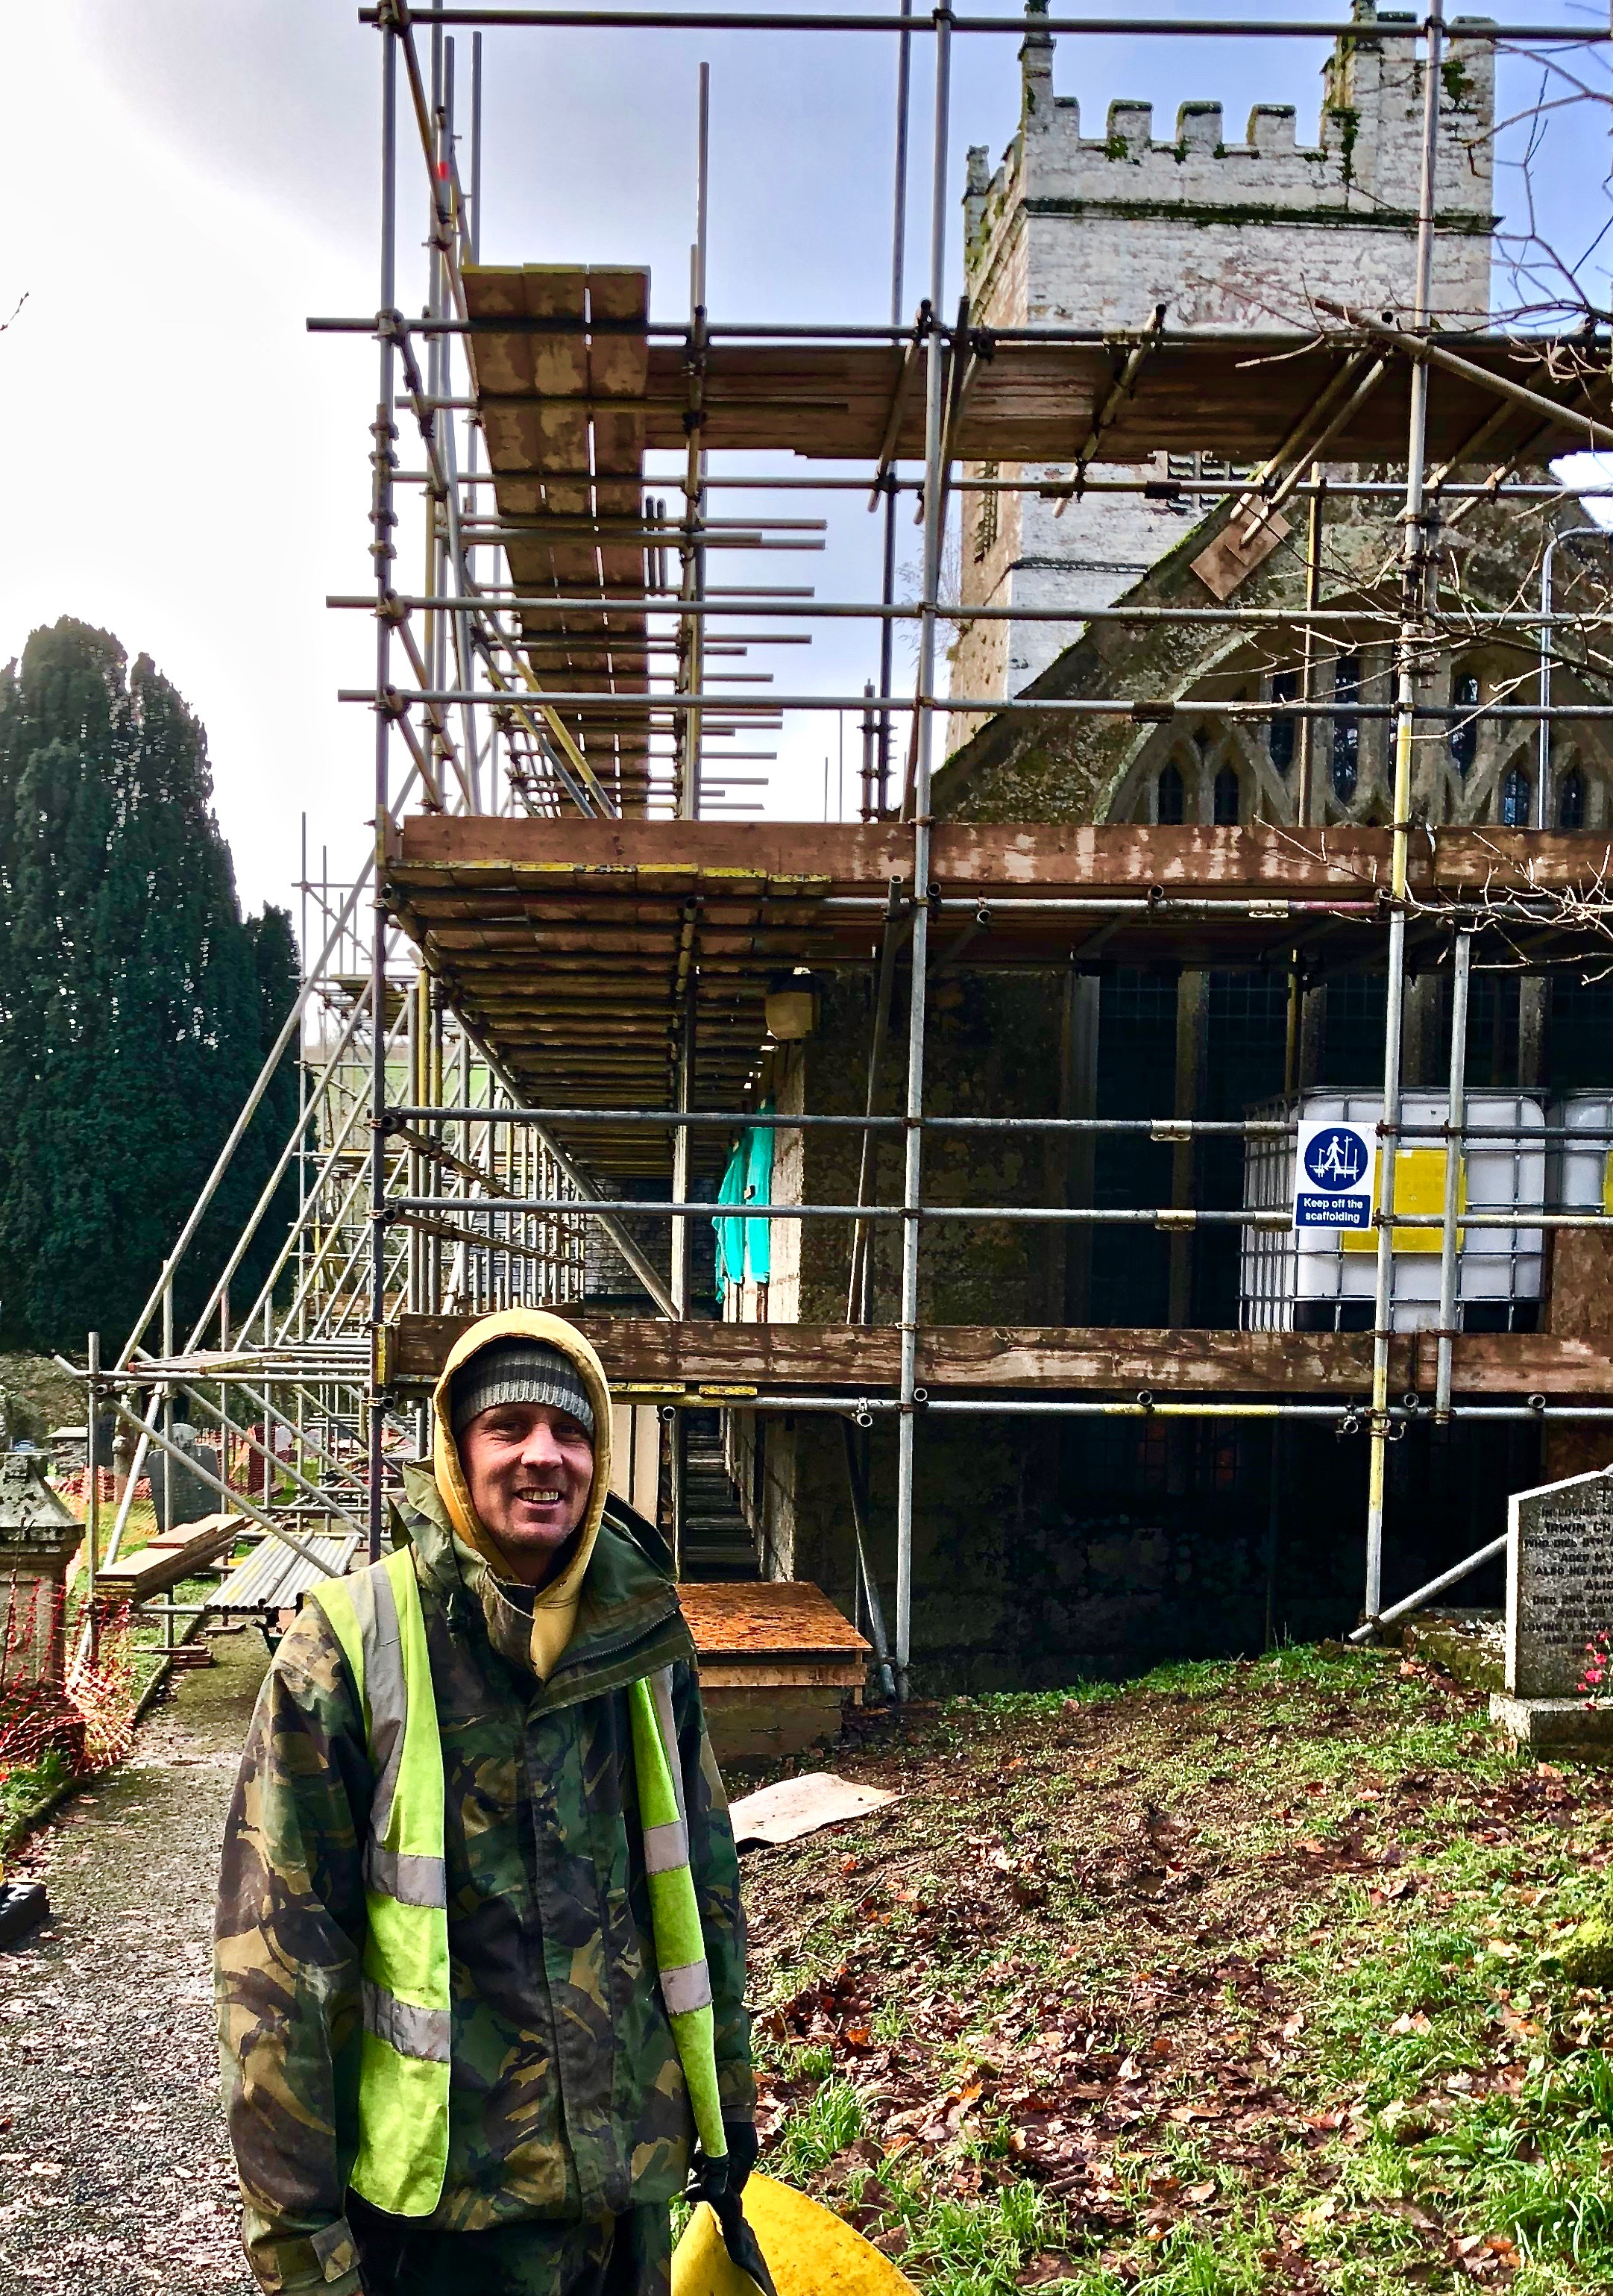 "7/12/18 chris - the scaffolder in chief….'""Its going well in spite of the rain"""